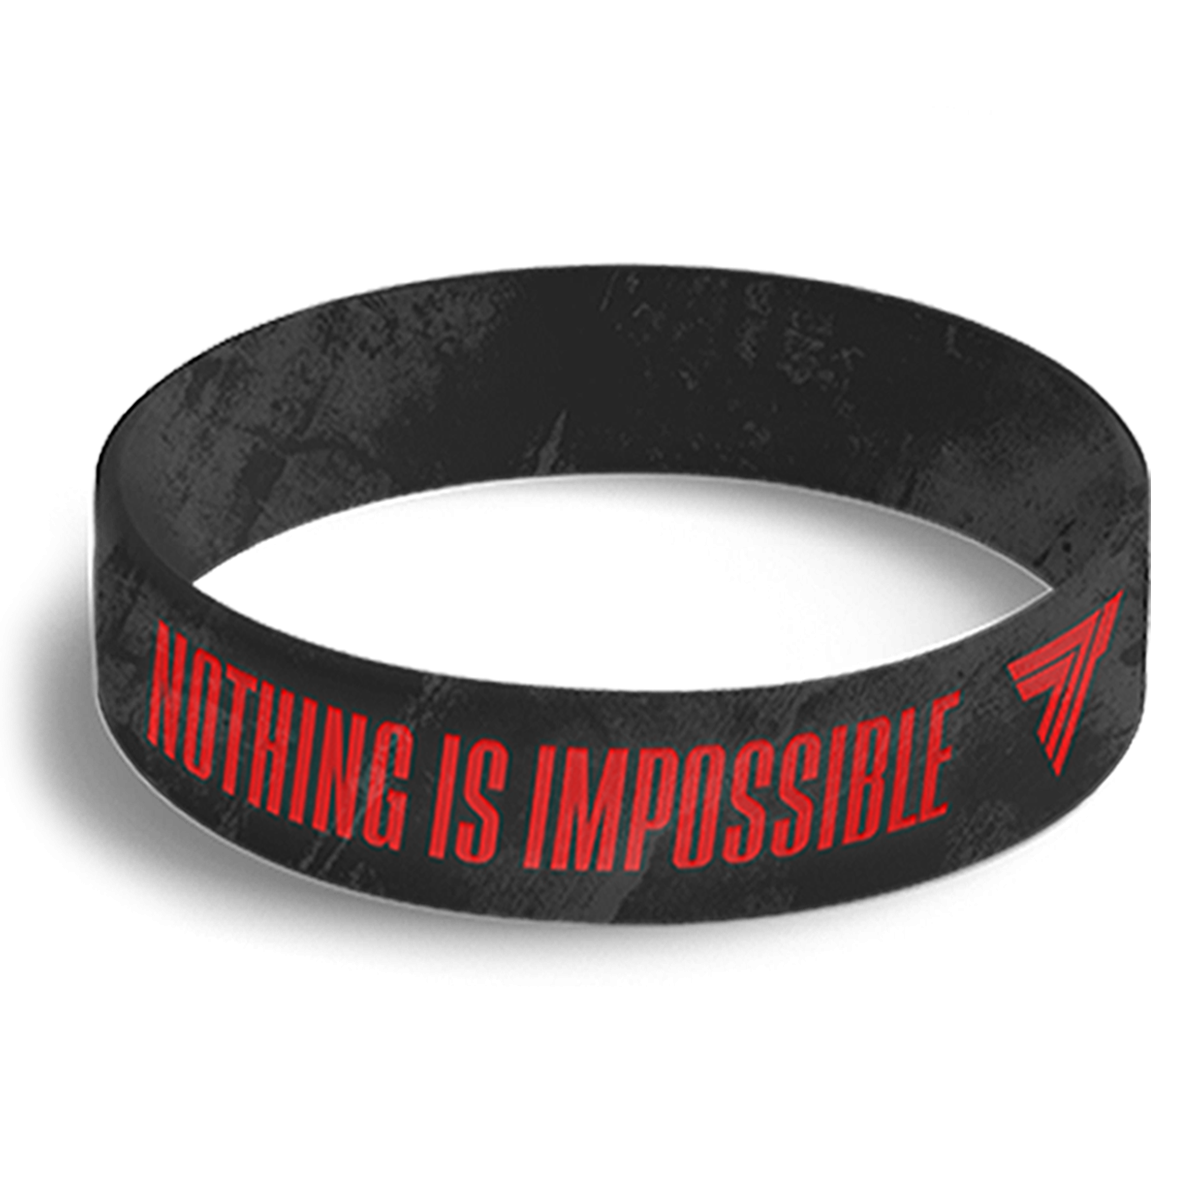 WRISTBAND 042 opaska sportowa - NOTHING IS IMPOSSIBLE